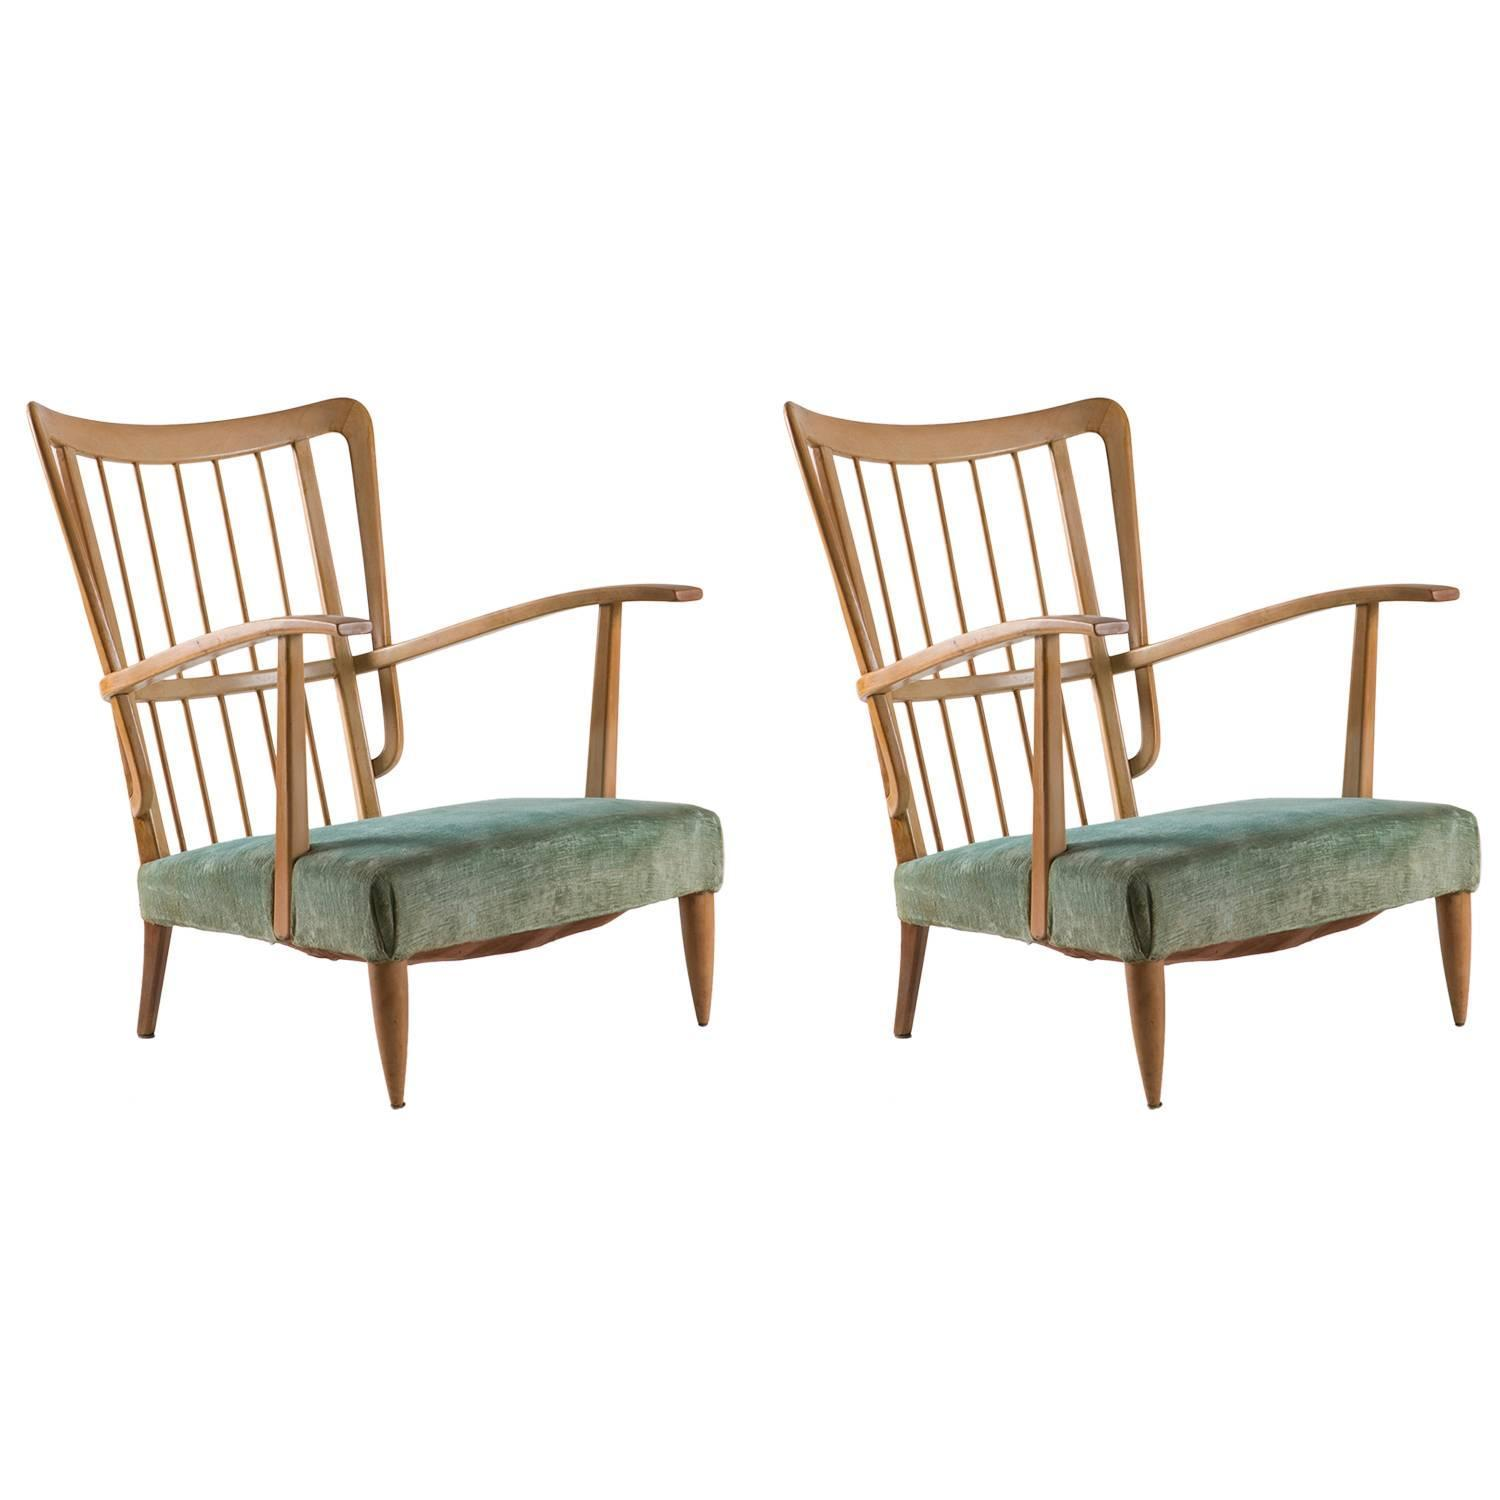 Remarkable Pair Of Two Italian 1940s Lounge Chairs For